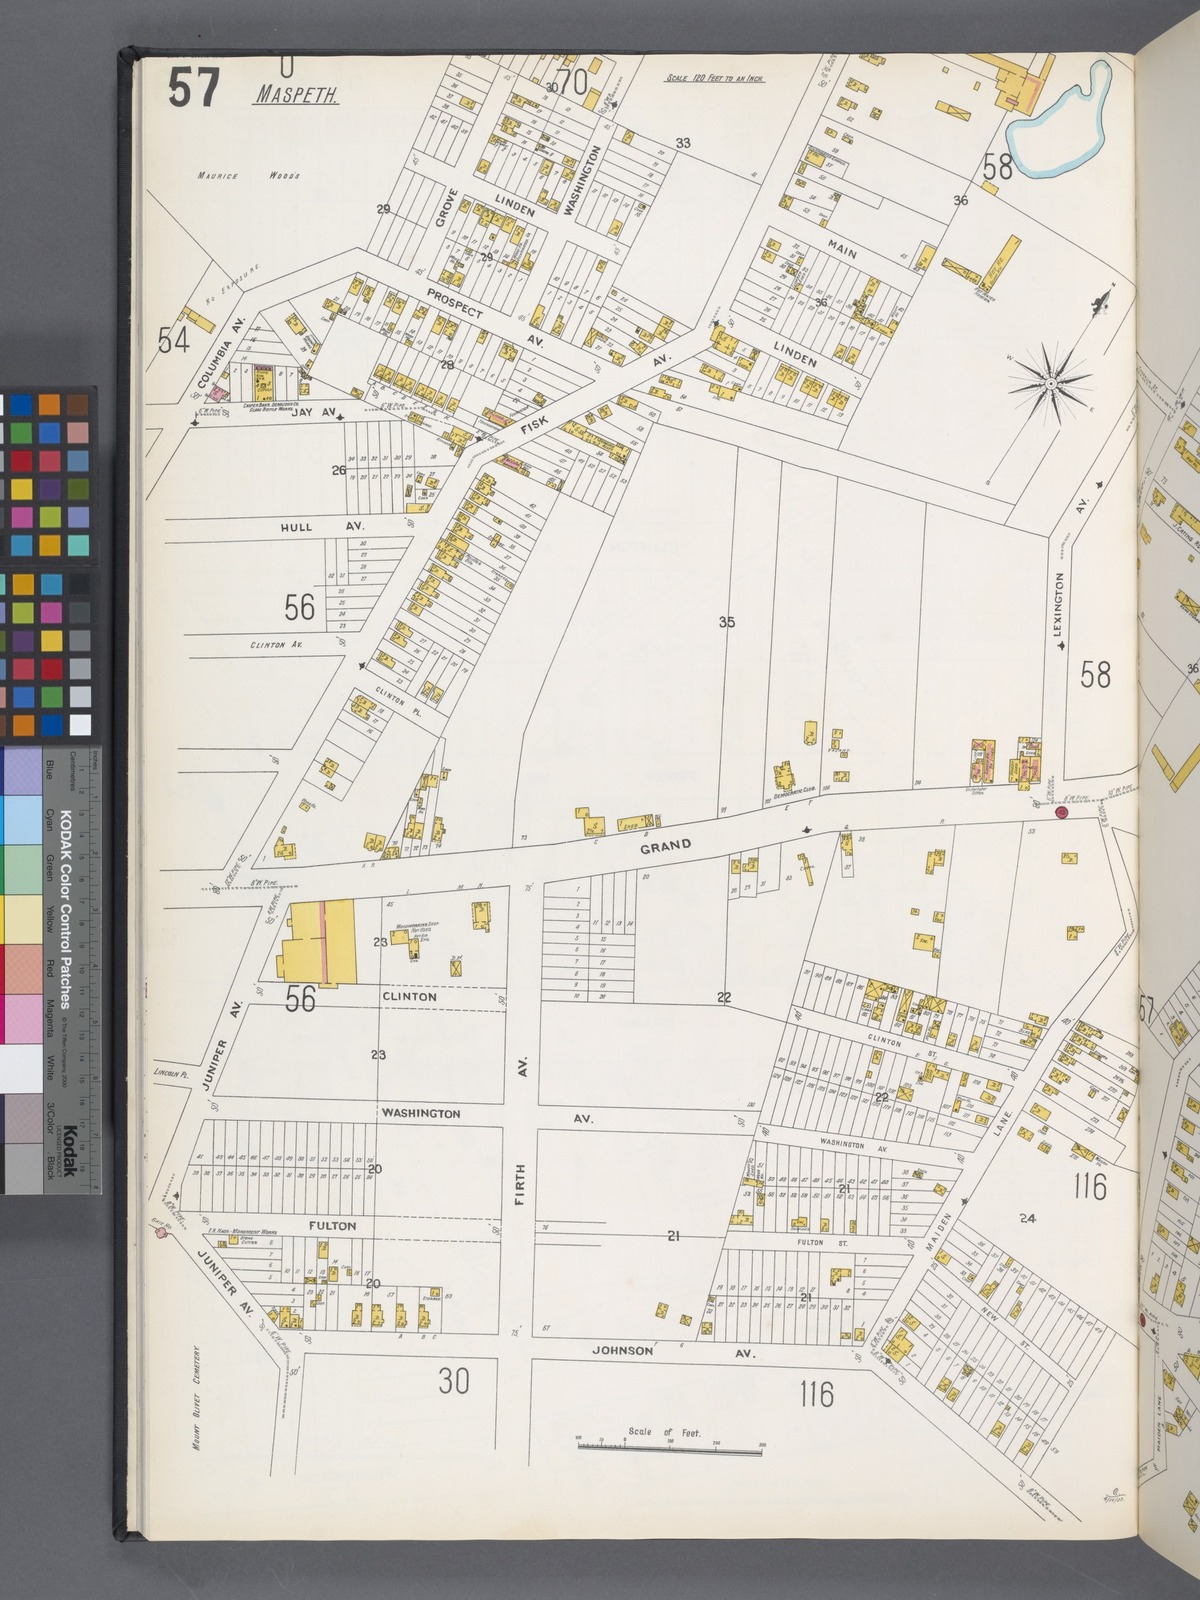 Queens V. 3, Plate No. 57 [Map bounded by Prospect Ave., Fisk Ave., Lexington Ave., Maiden Lane, Johnson Ave., Juniper Ave., Columbia Ave.]